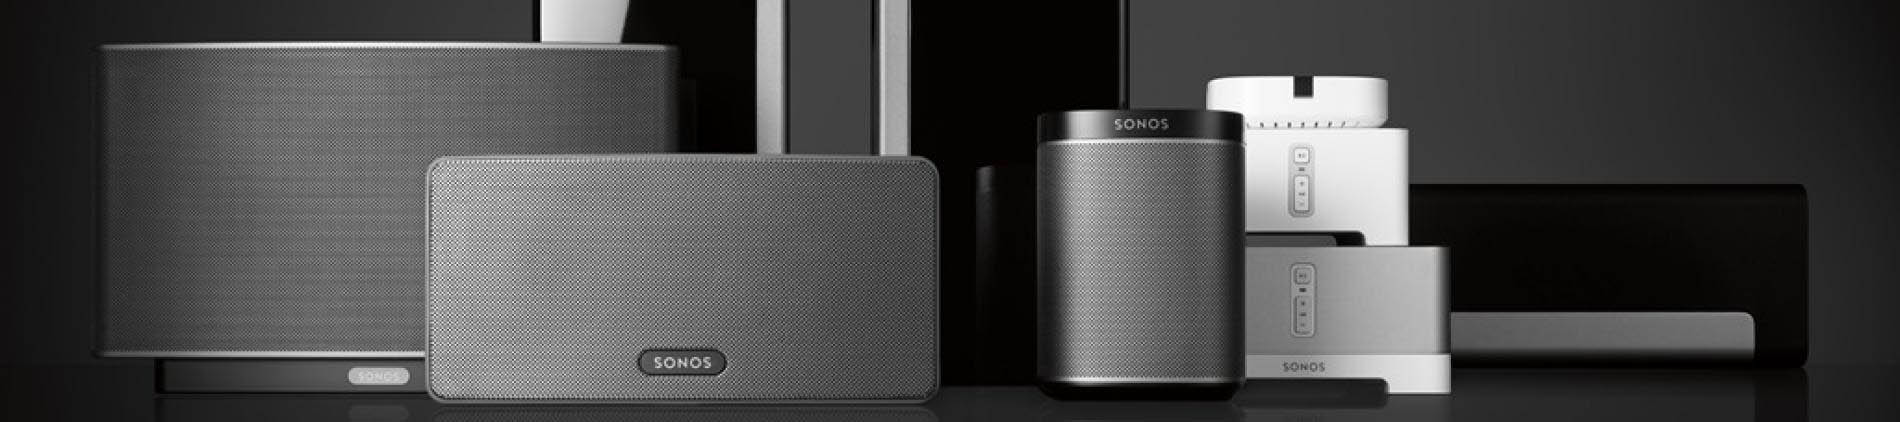 Sonos wireless Hi Fi